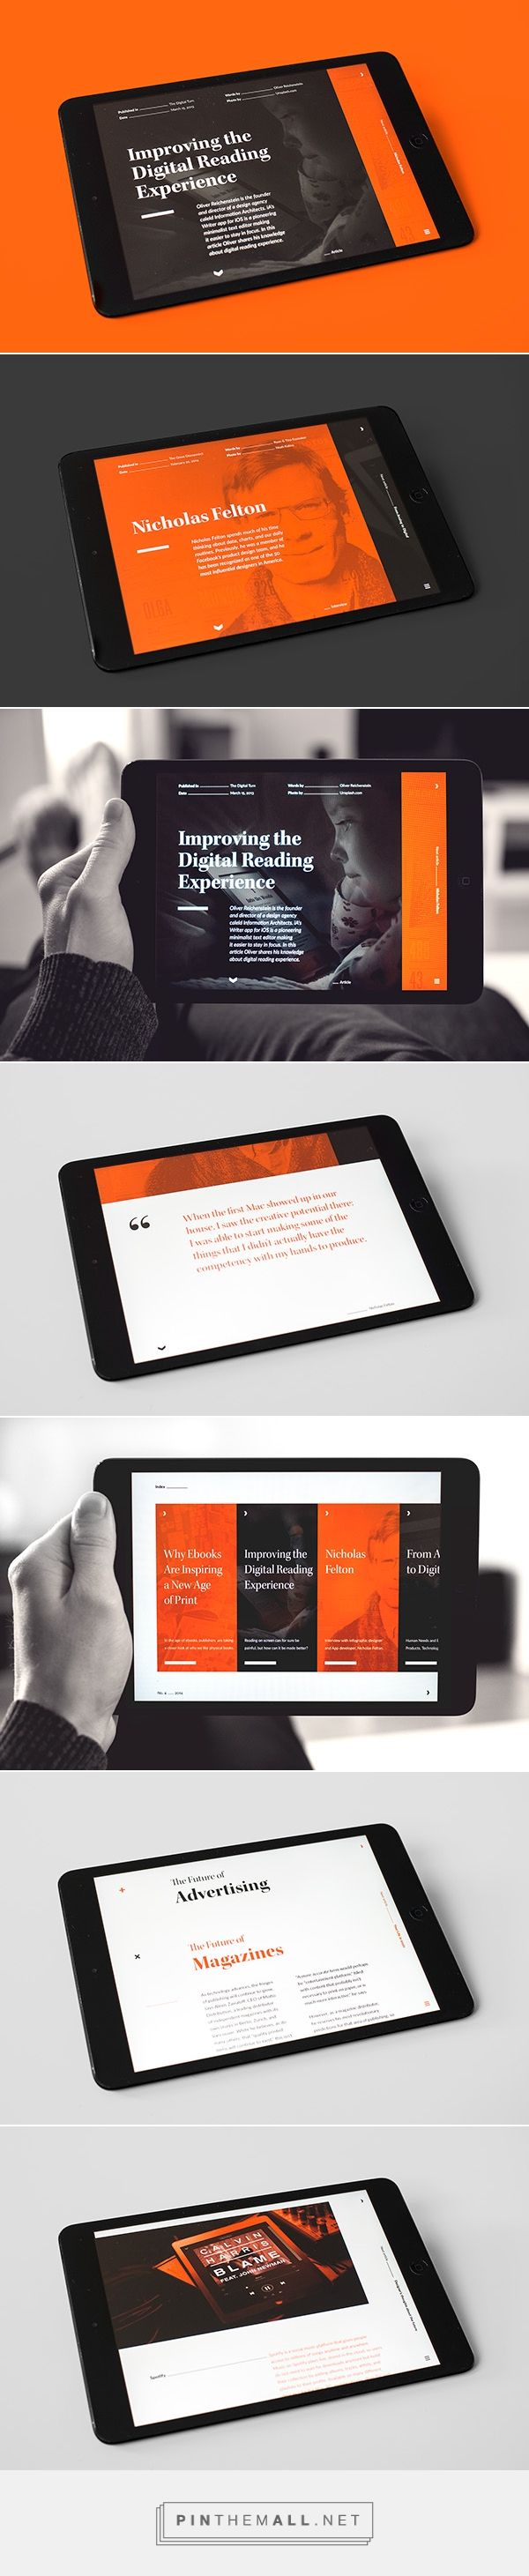 Verso – Digital Magazine | Abduzeedo Design Inspiration - created via http://pinthemall.net #Mobile #Apps #Design